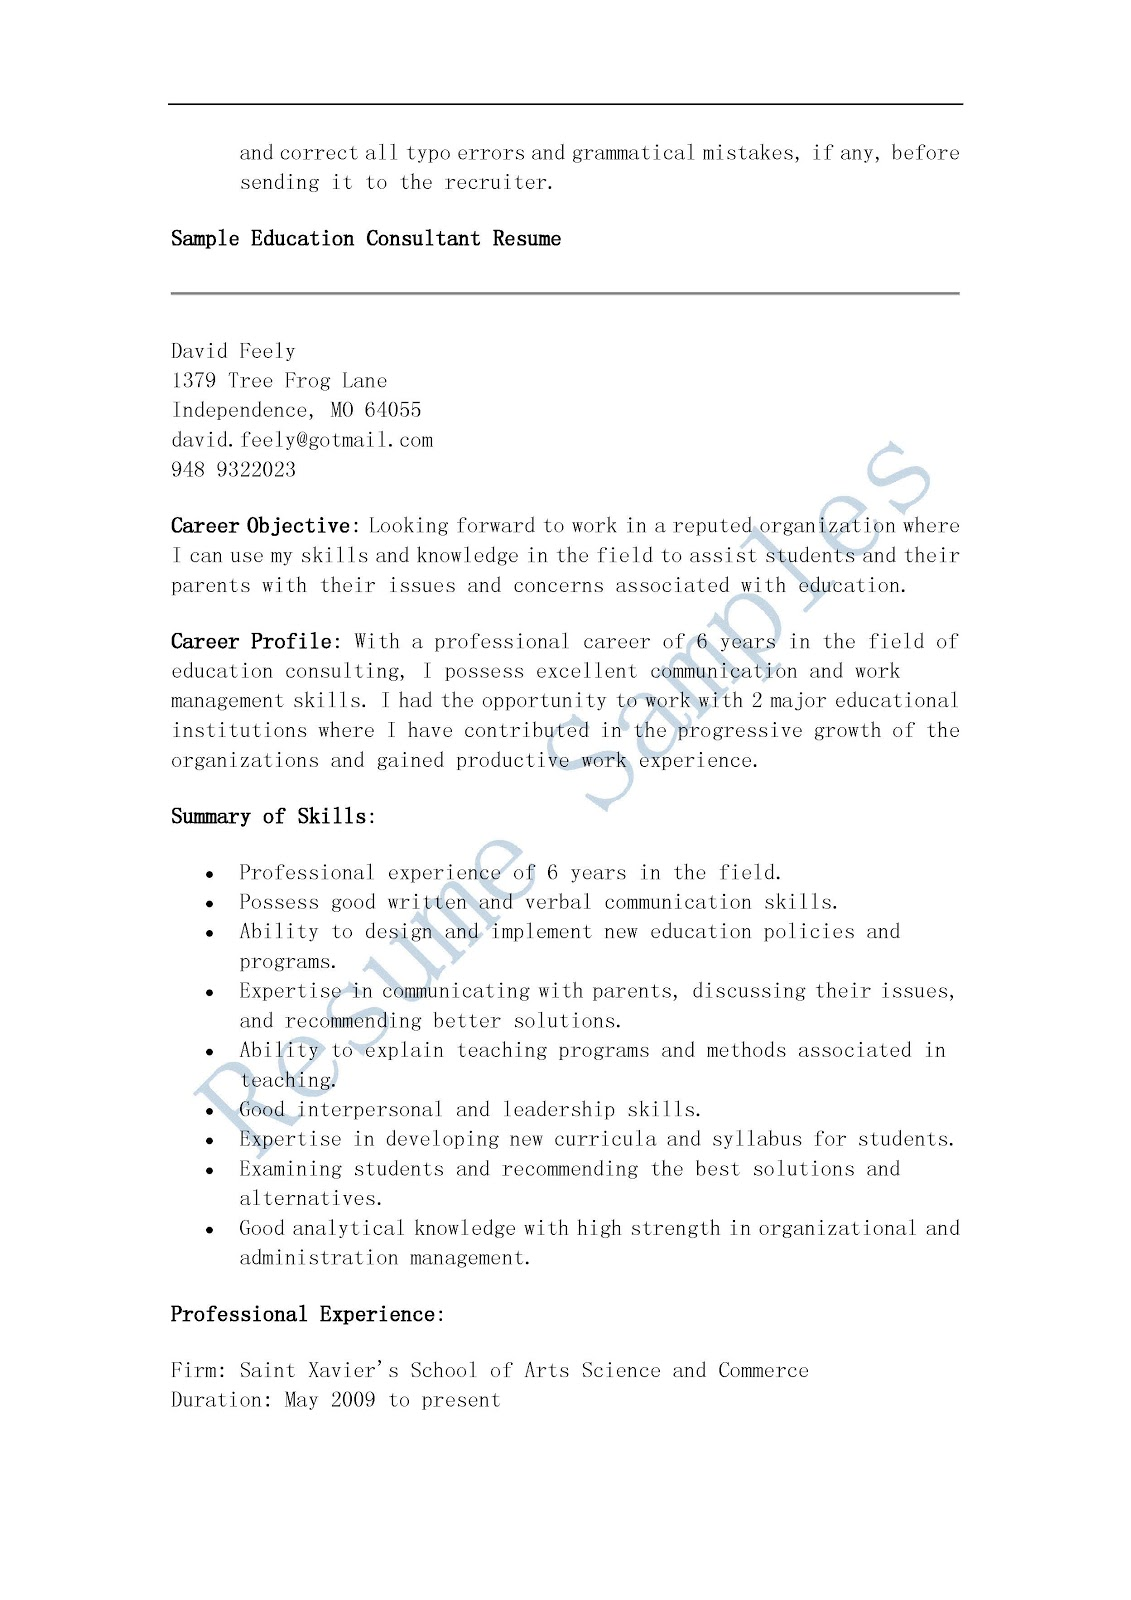 resume sles education consultant resume